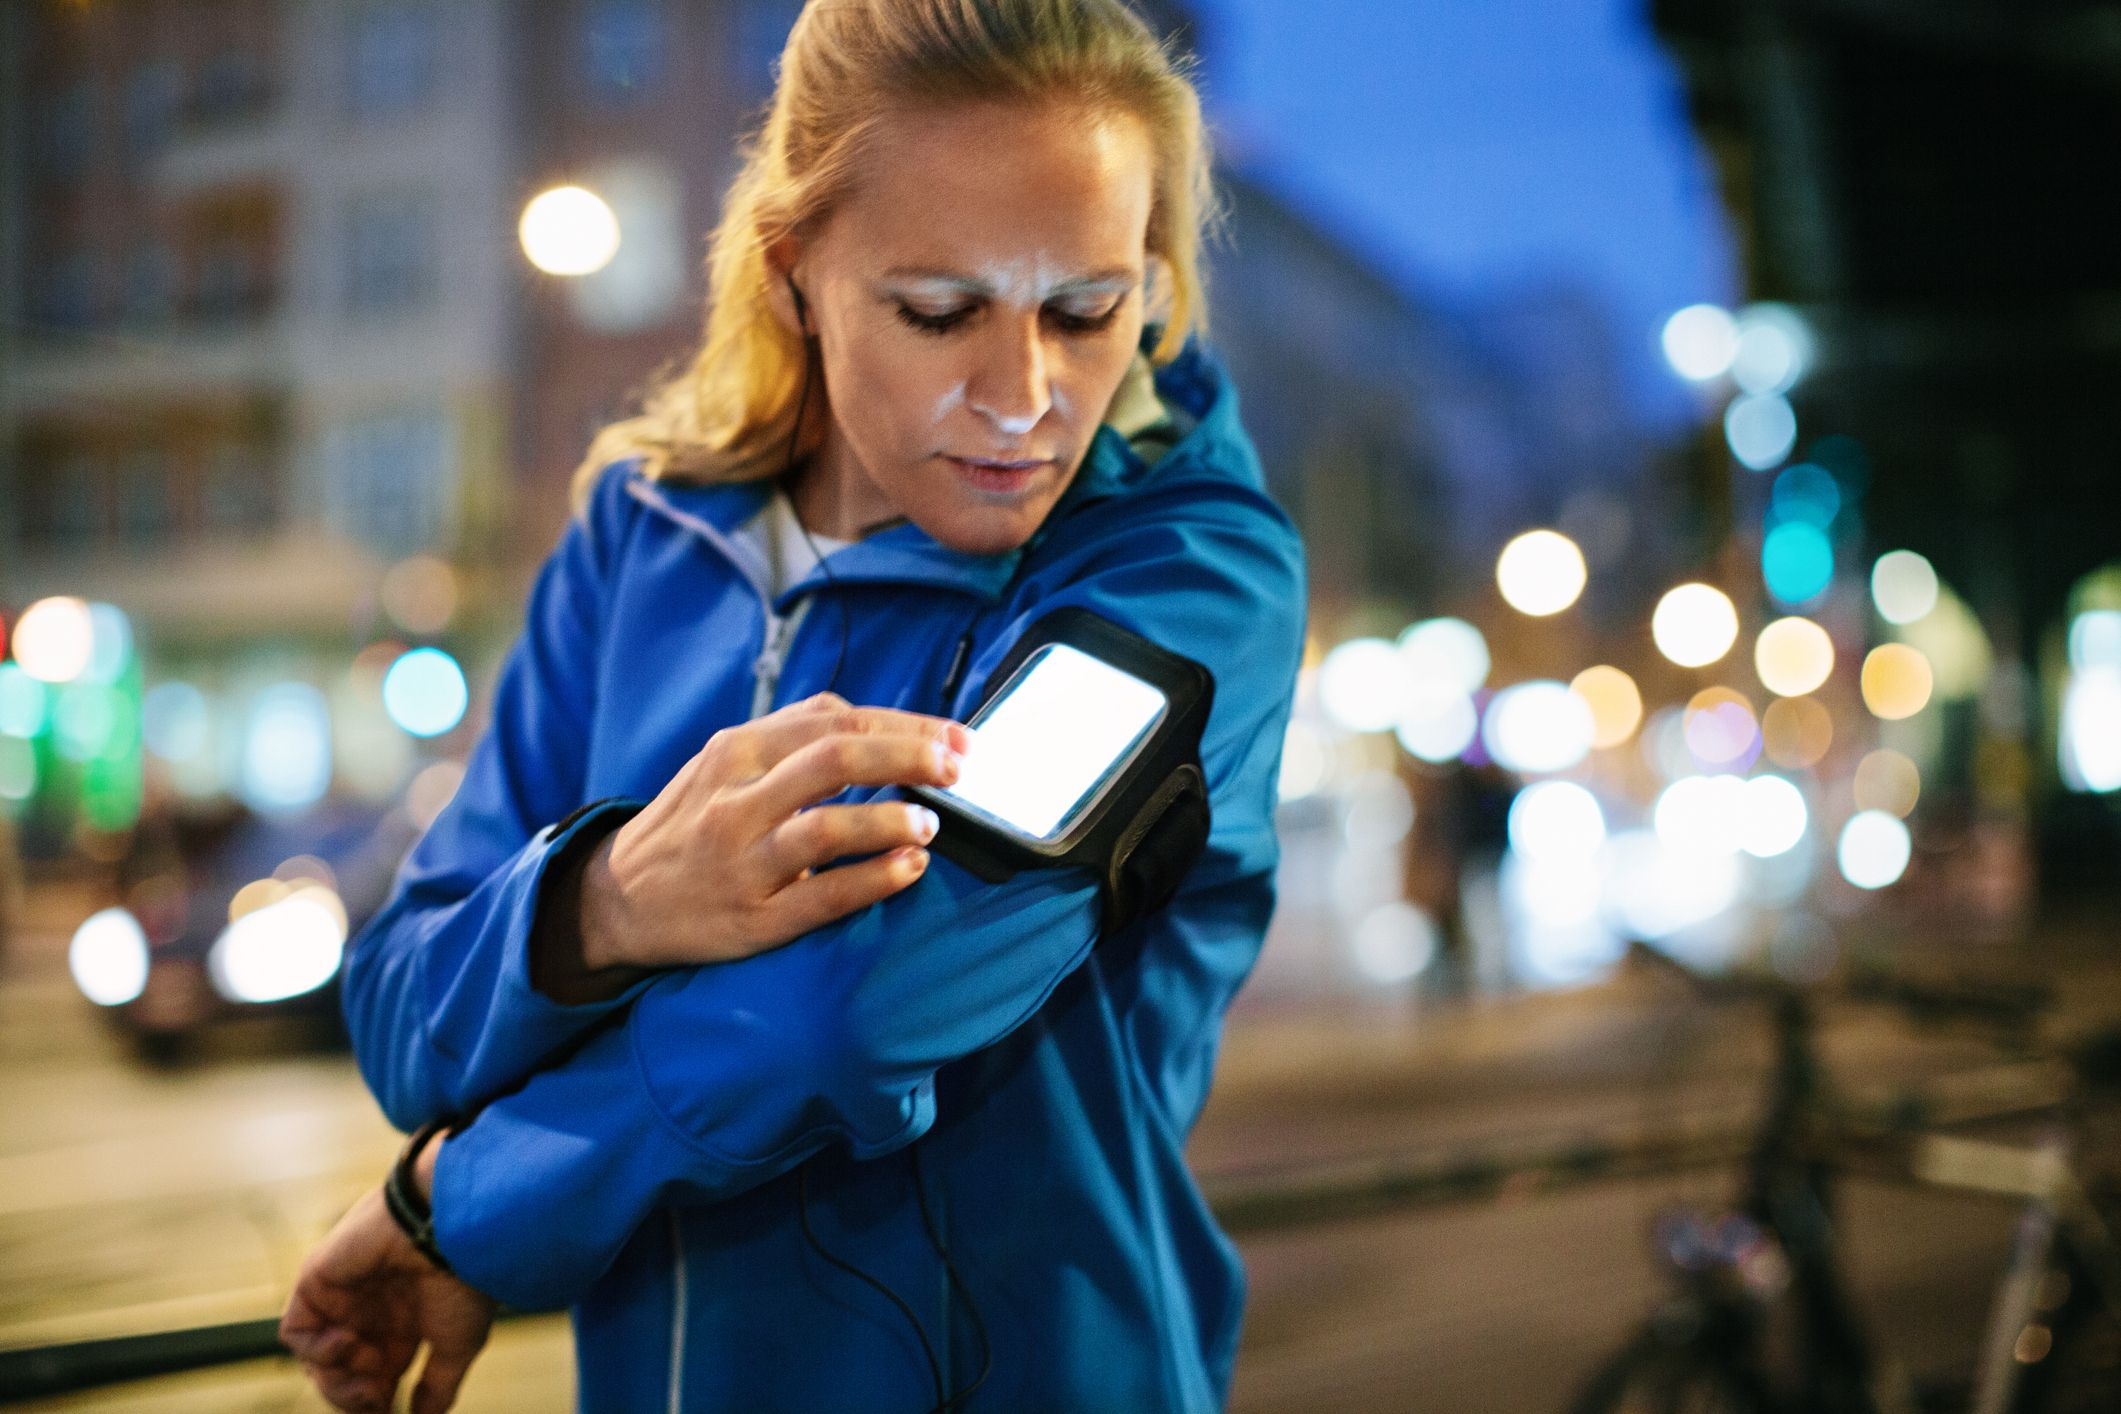 Is it safe for female runners to share their running routes online?